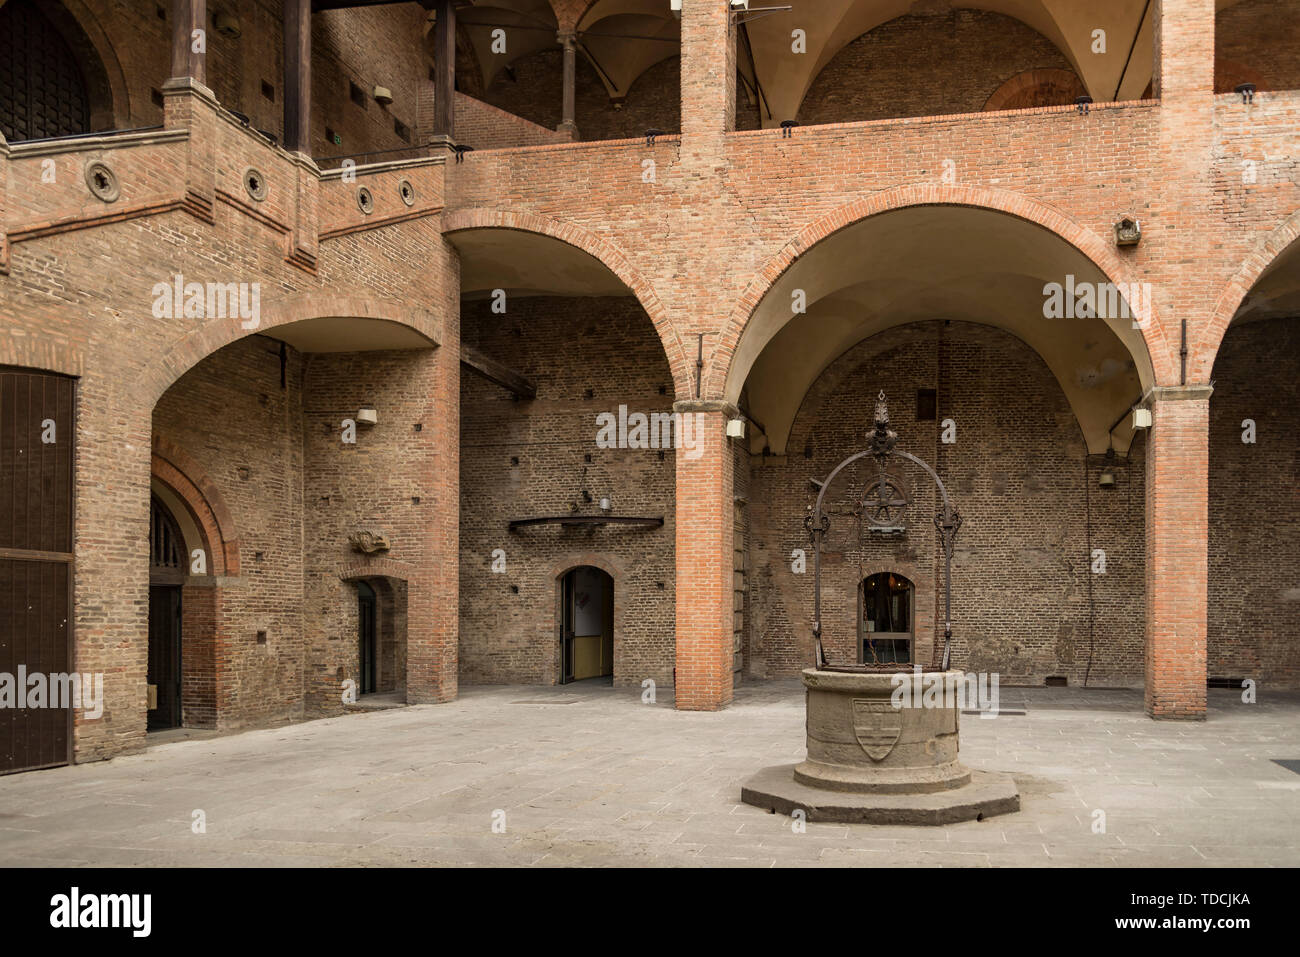 The King Enzo palace in Maggiore square, Bologna, Italy Stock Photo